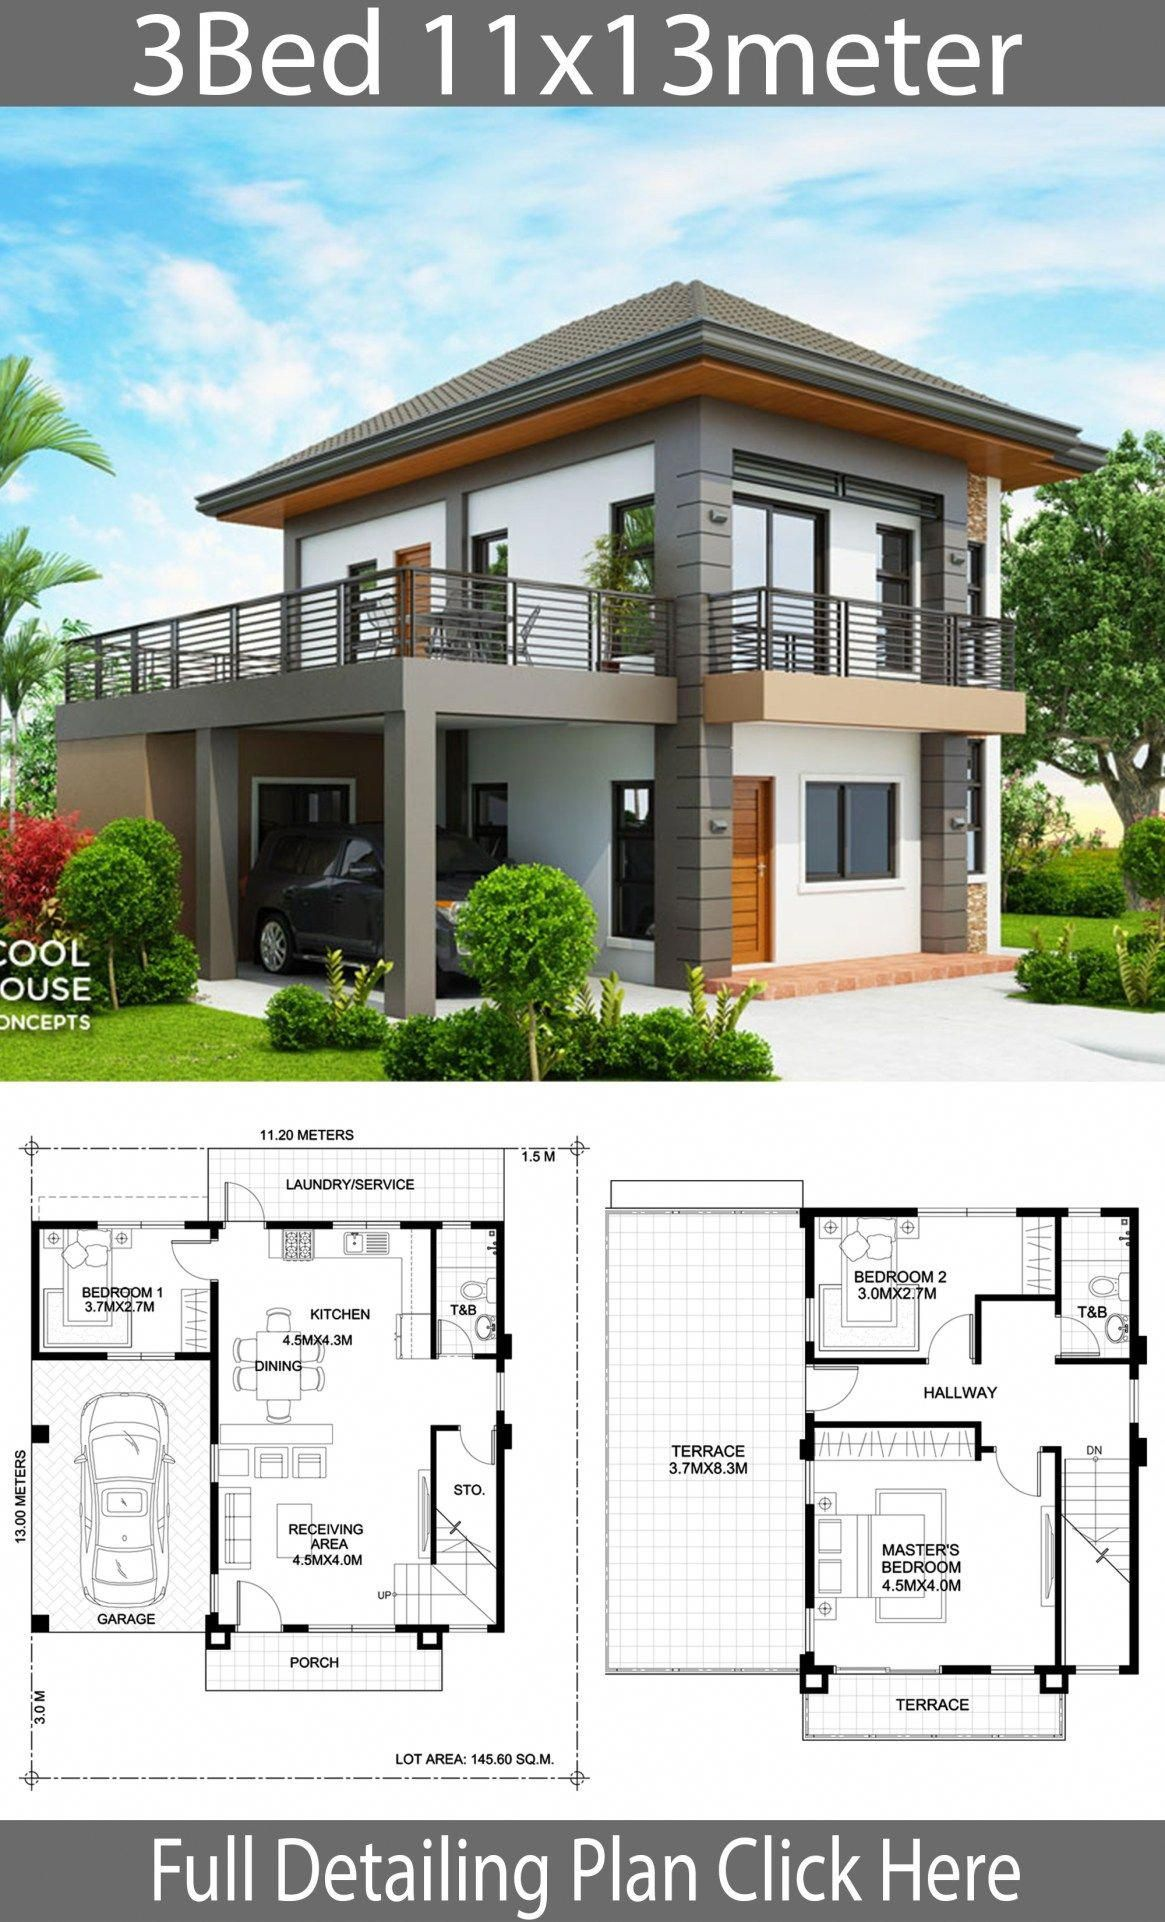 Home Design Plan 11x13m With 3 Bedrooms Home Design With Plansearch Modernhomeinteriors Two Story House Design Sims House Plans Modern House Design